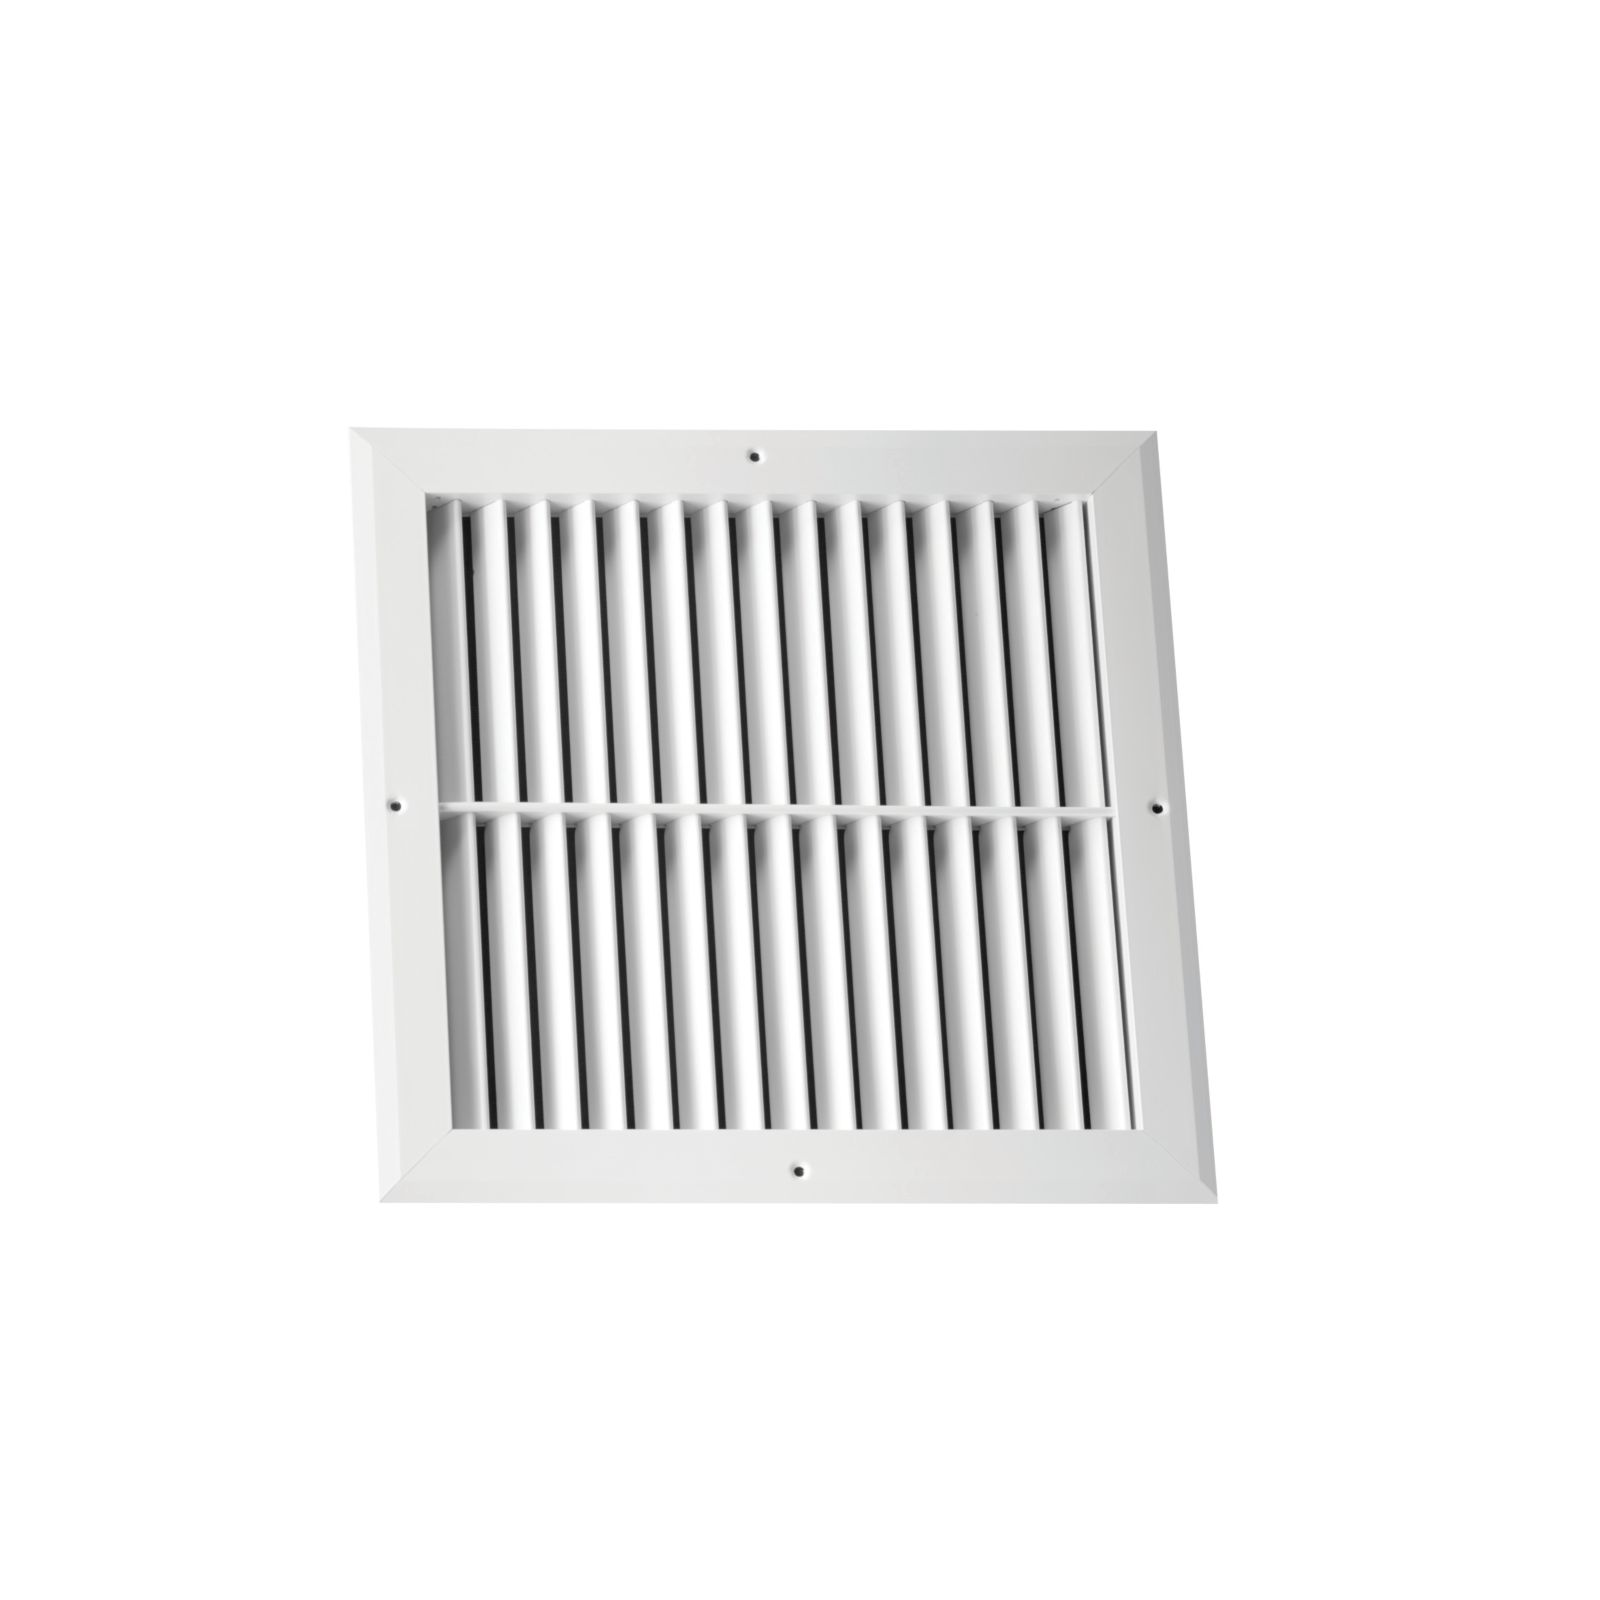 "Hart & Cooley 064065 - Aluminum Return Air Grille, 45-Degree Fixed Blade, White Finish, 24"" X 12"""